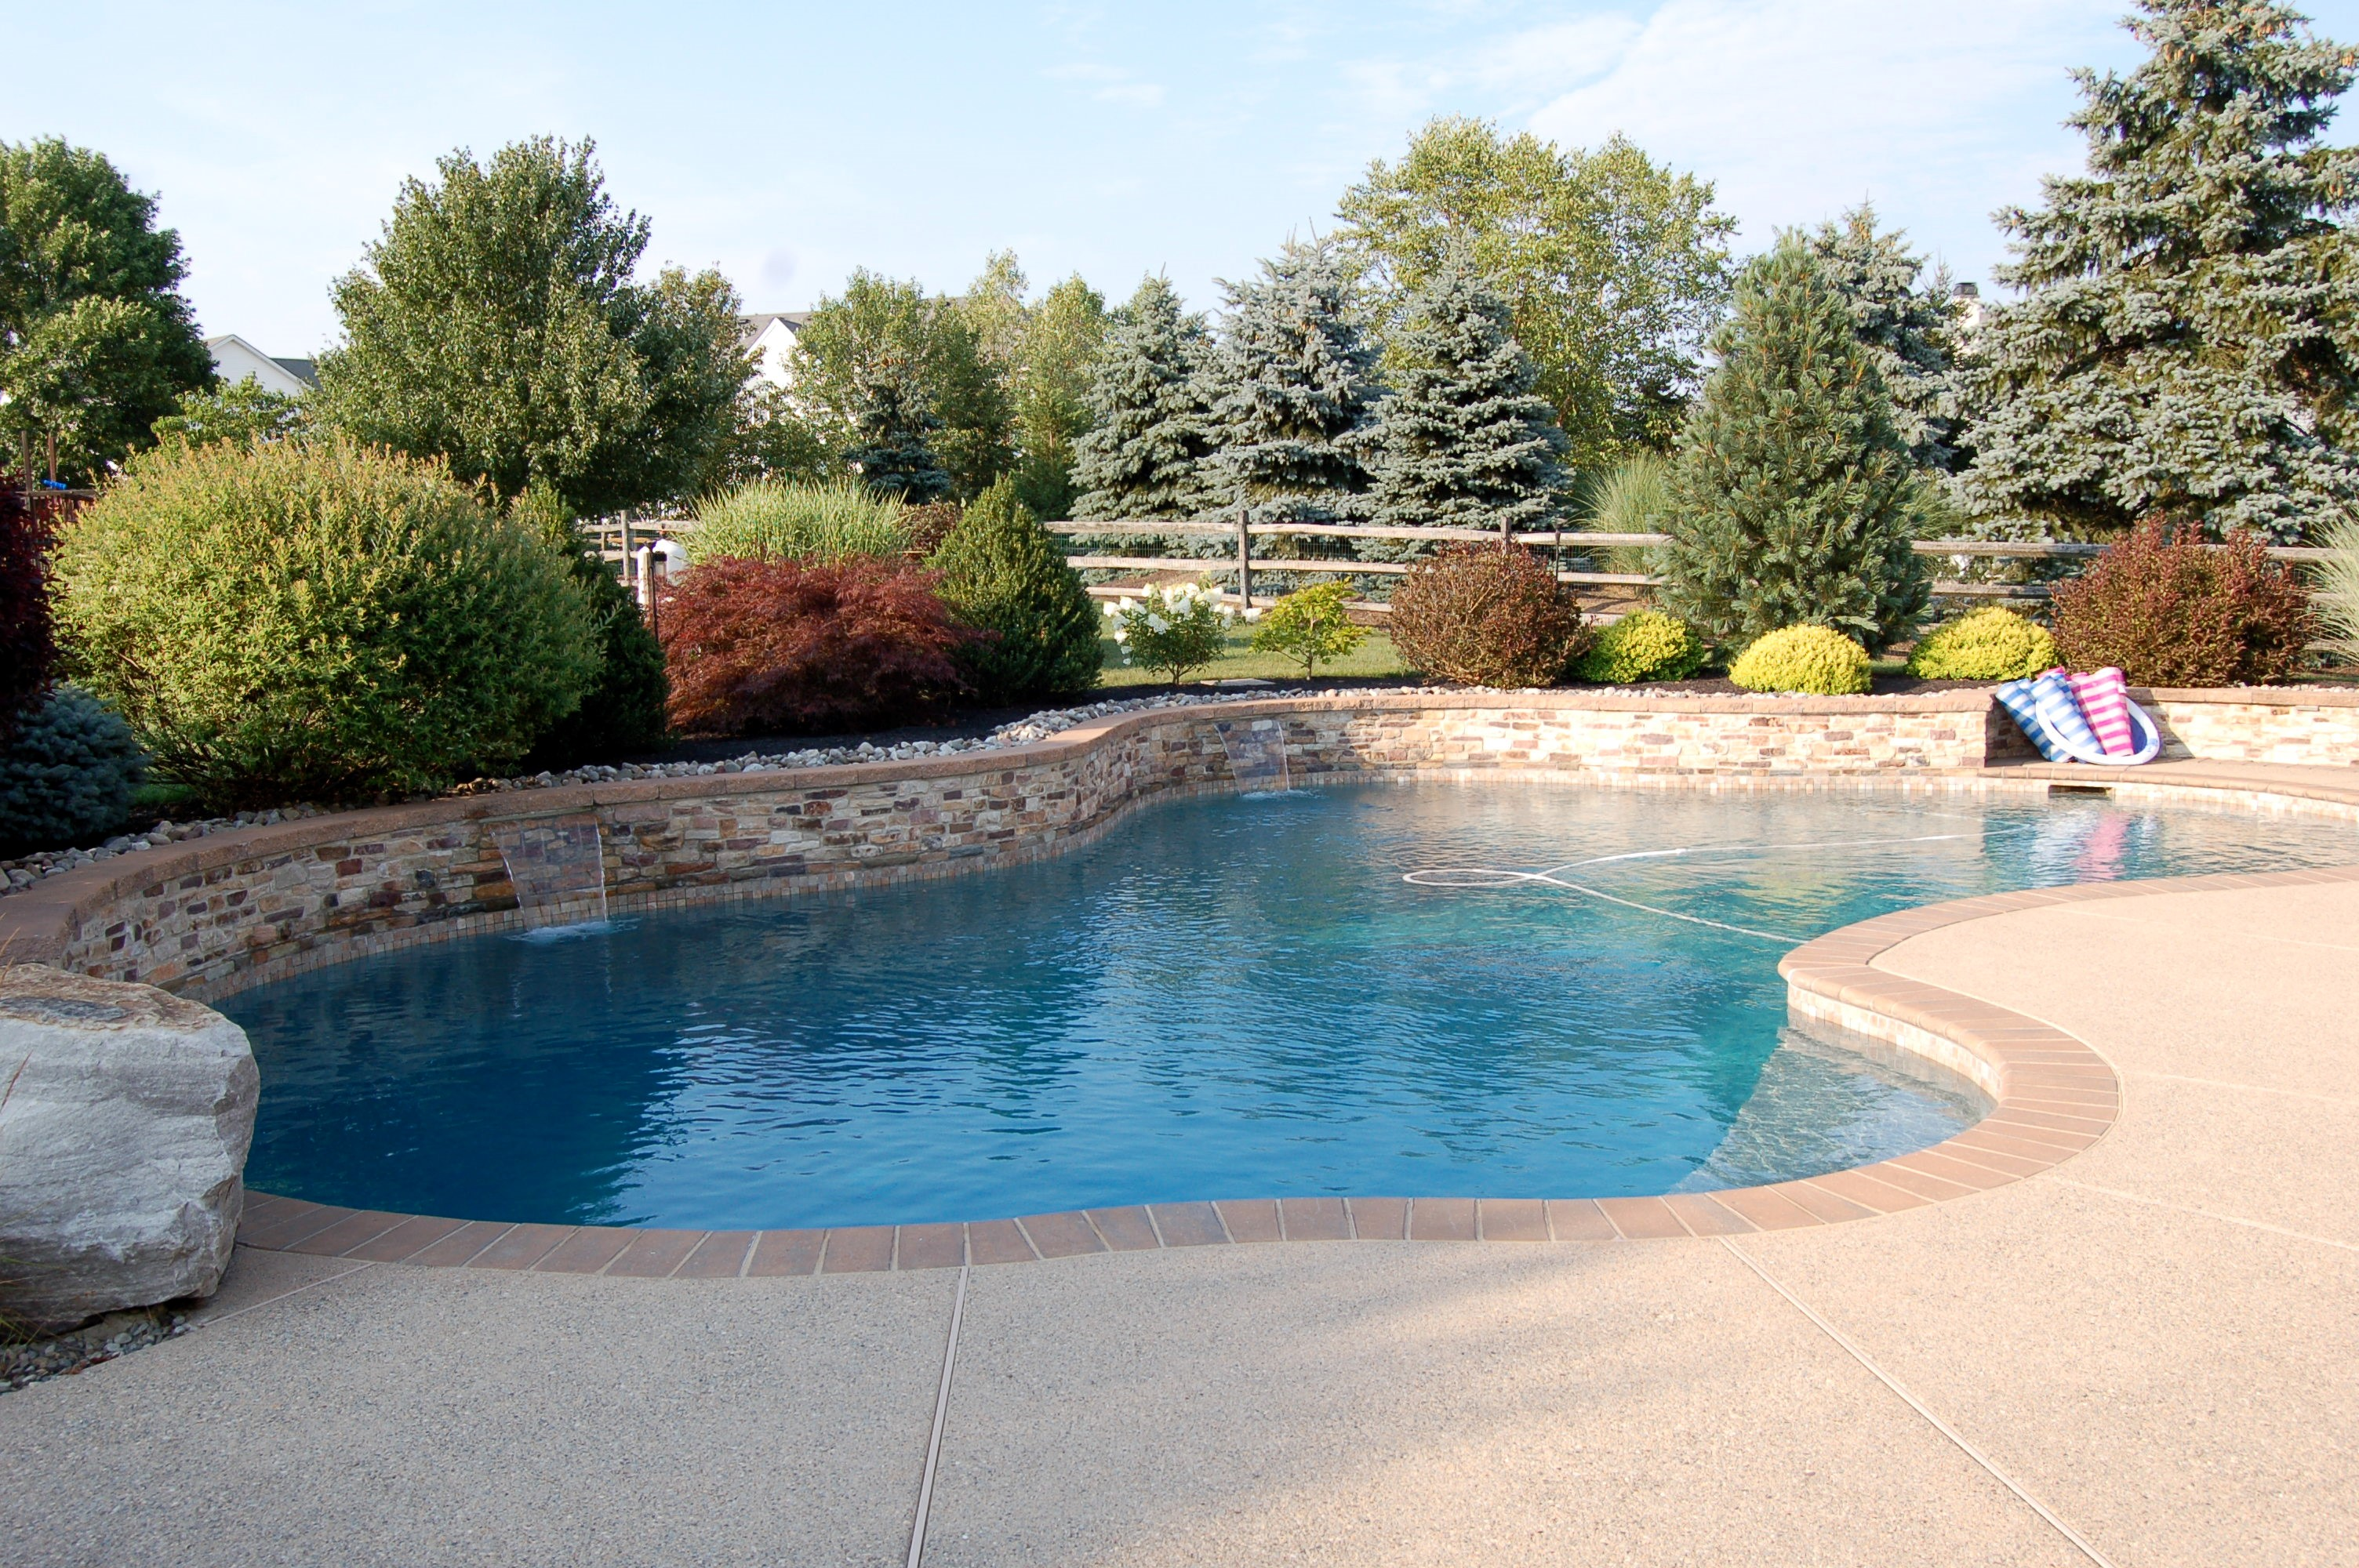 Stone Wall, Brick Coping, Large Rock, Fertilizer From Vegetation, All Add Metals To Swimming Pool Water And Cause Staining On Gunnite Surfaces